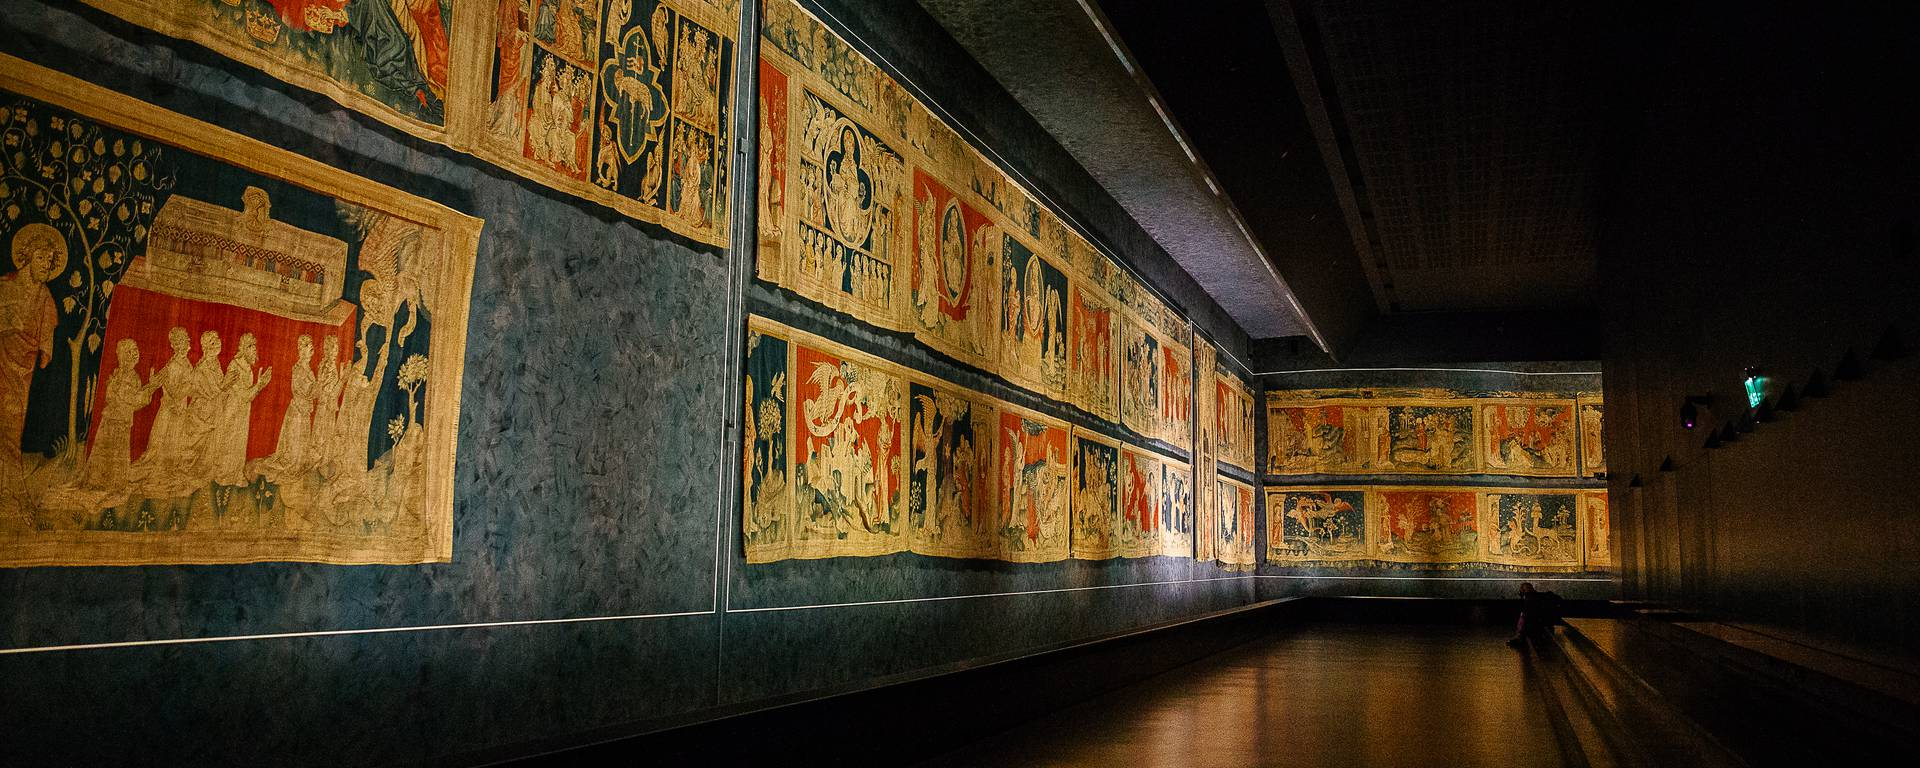 The Apocalypse Tapestry, a monumental work of art at the Château d'Angers © Les Conteurs